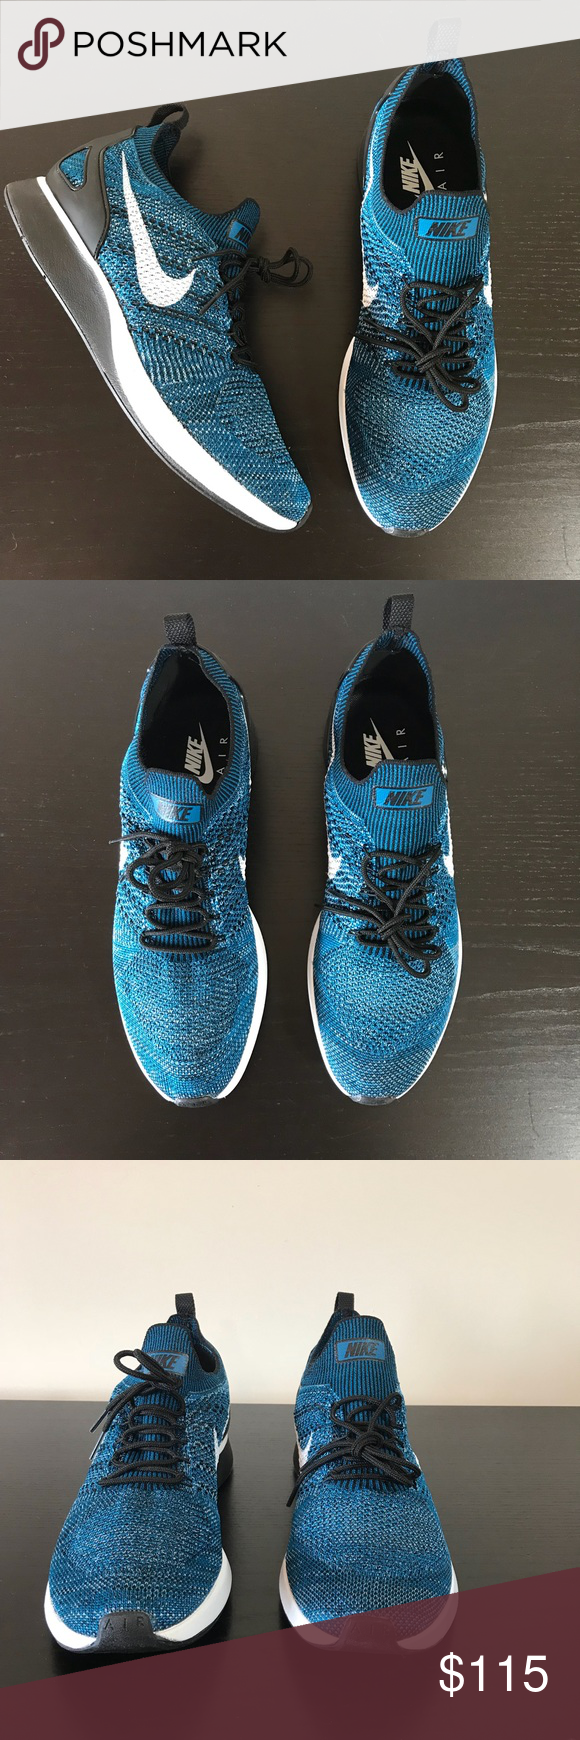 14a1e40a7a09 Men s Nike • Air Zoom Mariah Flyknit Racer Size 11 Men s Nike • Air Zoom  Mariah Flyknit Racer Size 11 in Green Abyss   Black-Cirrus Blue   style     918264 ...